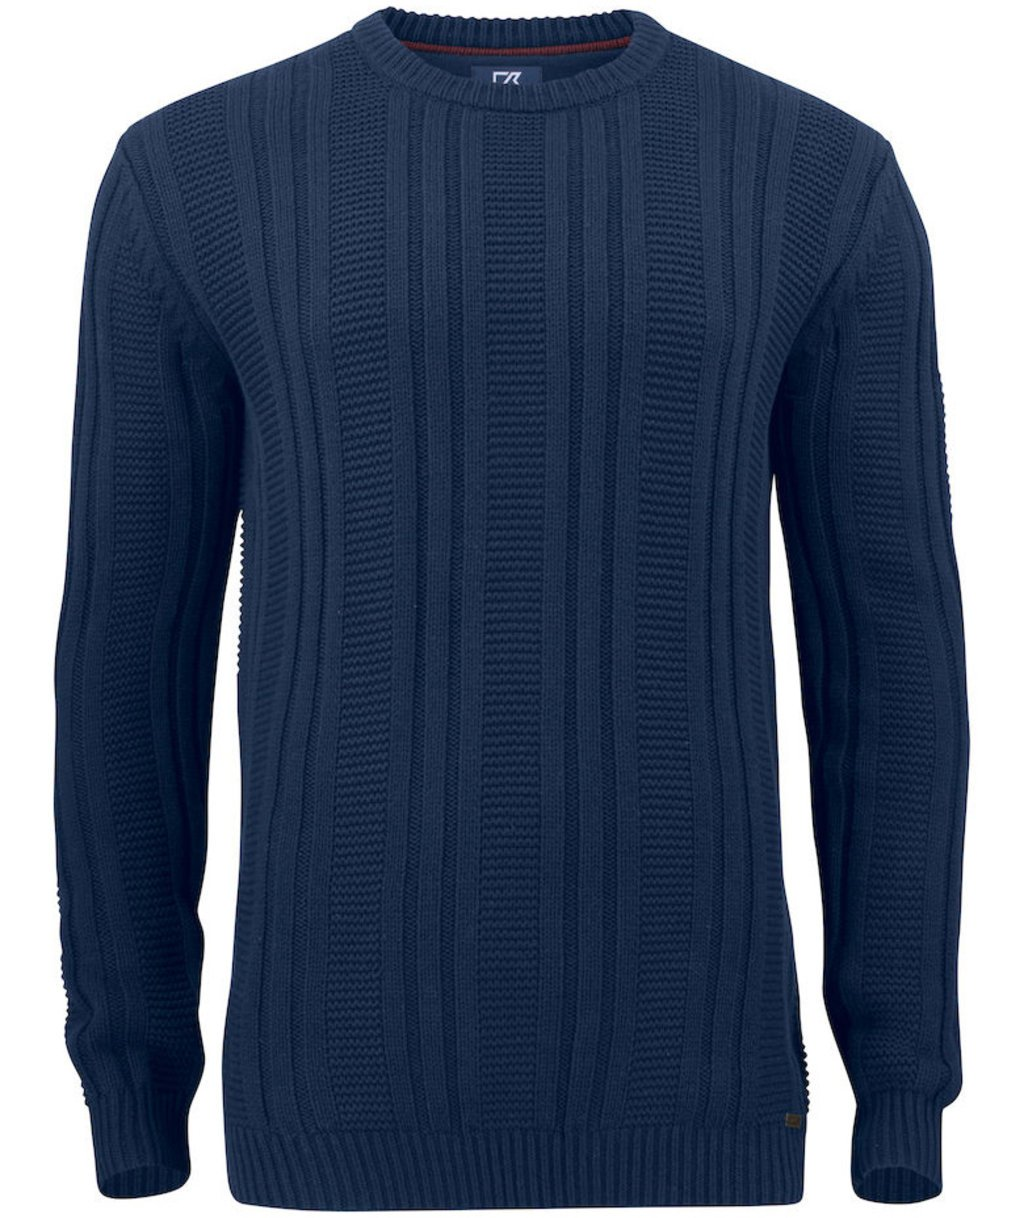 Cutter & Buck Elliot Bay strikk sweater, Dark Navy